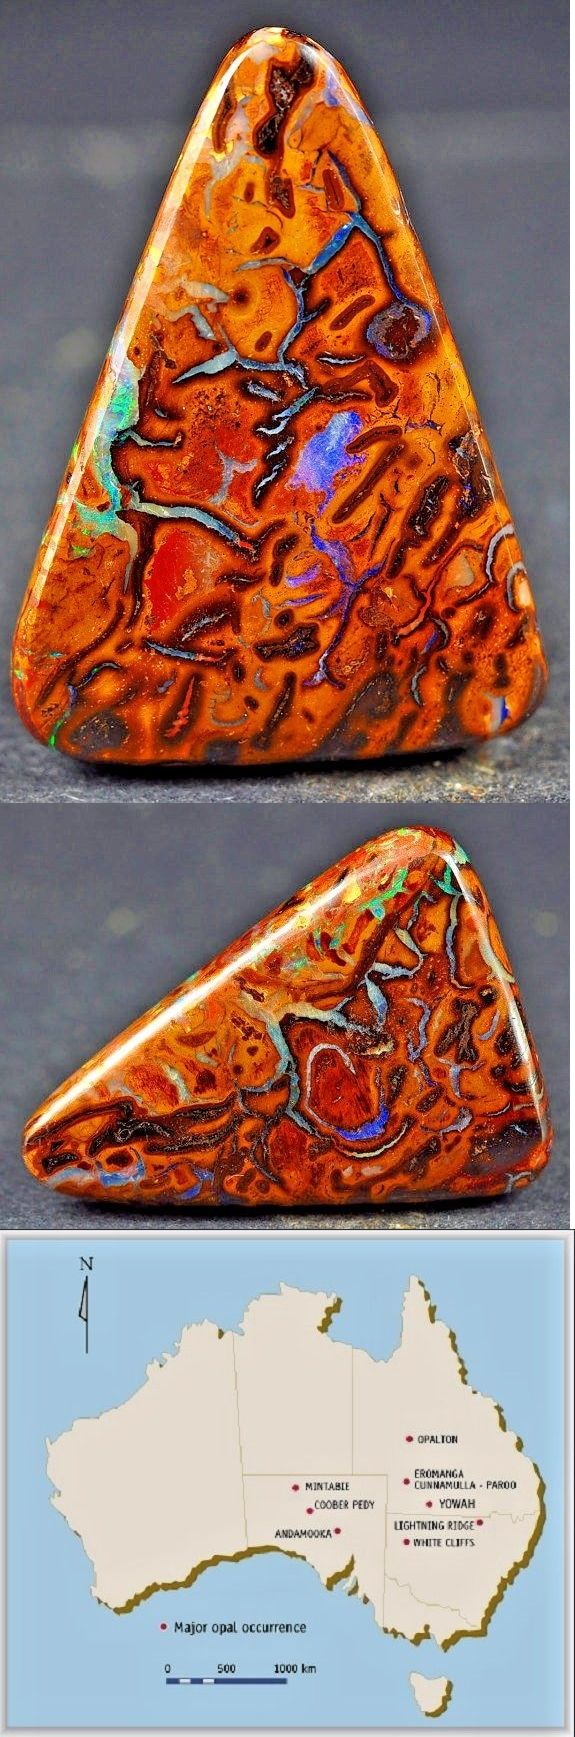 Boulder Opals 181111: 25.5 Cts Boulder Opal Koroit Australian Natural Solid Polished - Priced To Sell! -> BUY IT NOW ONLY: $59.99 on eBay!